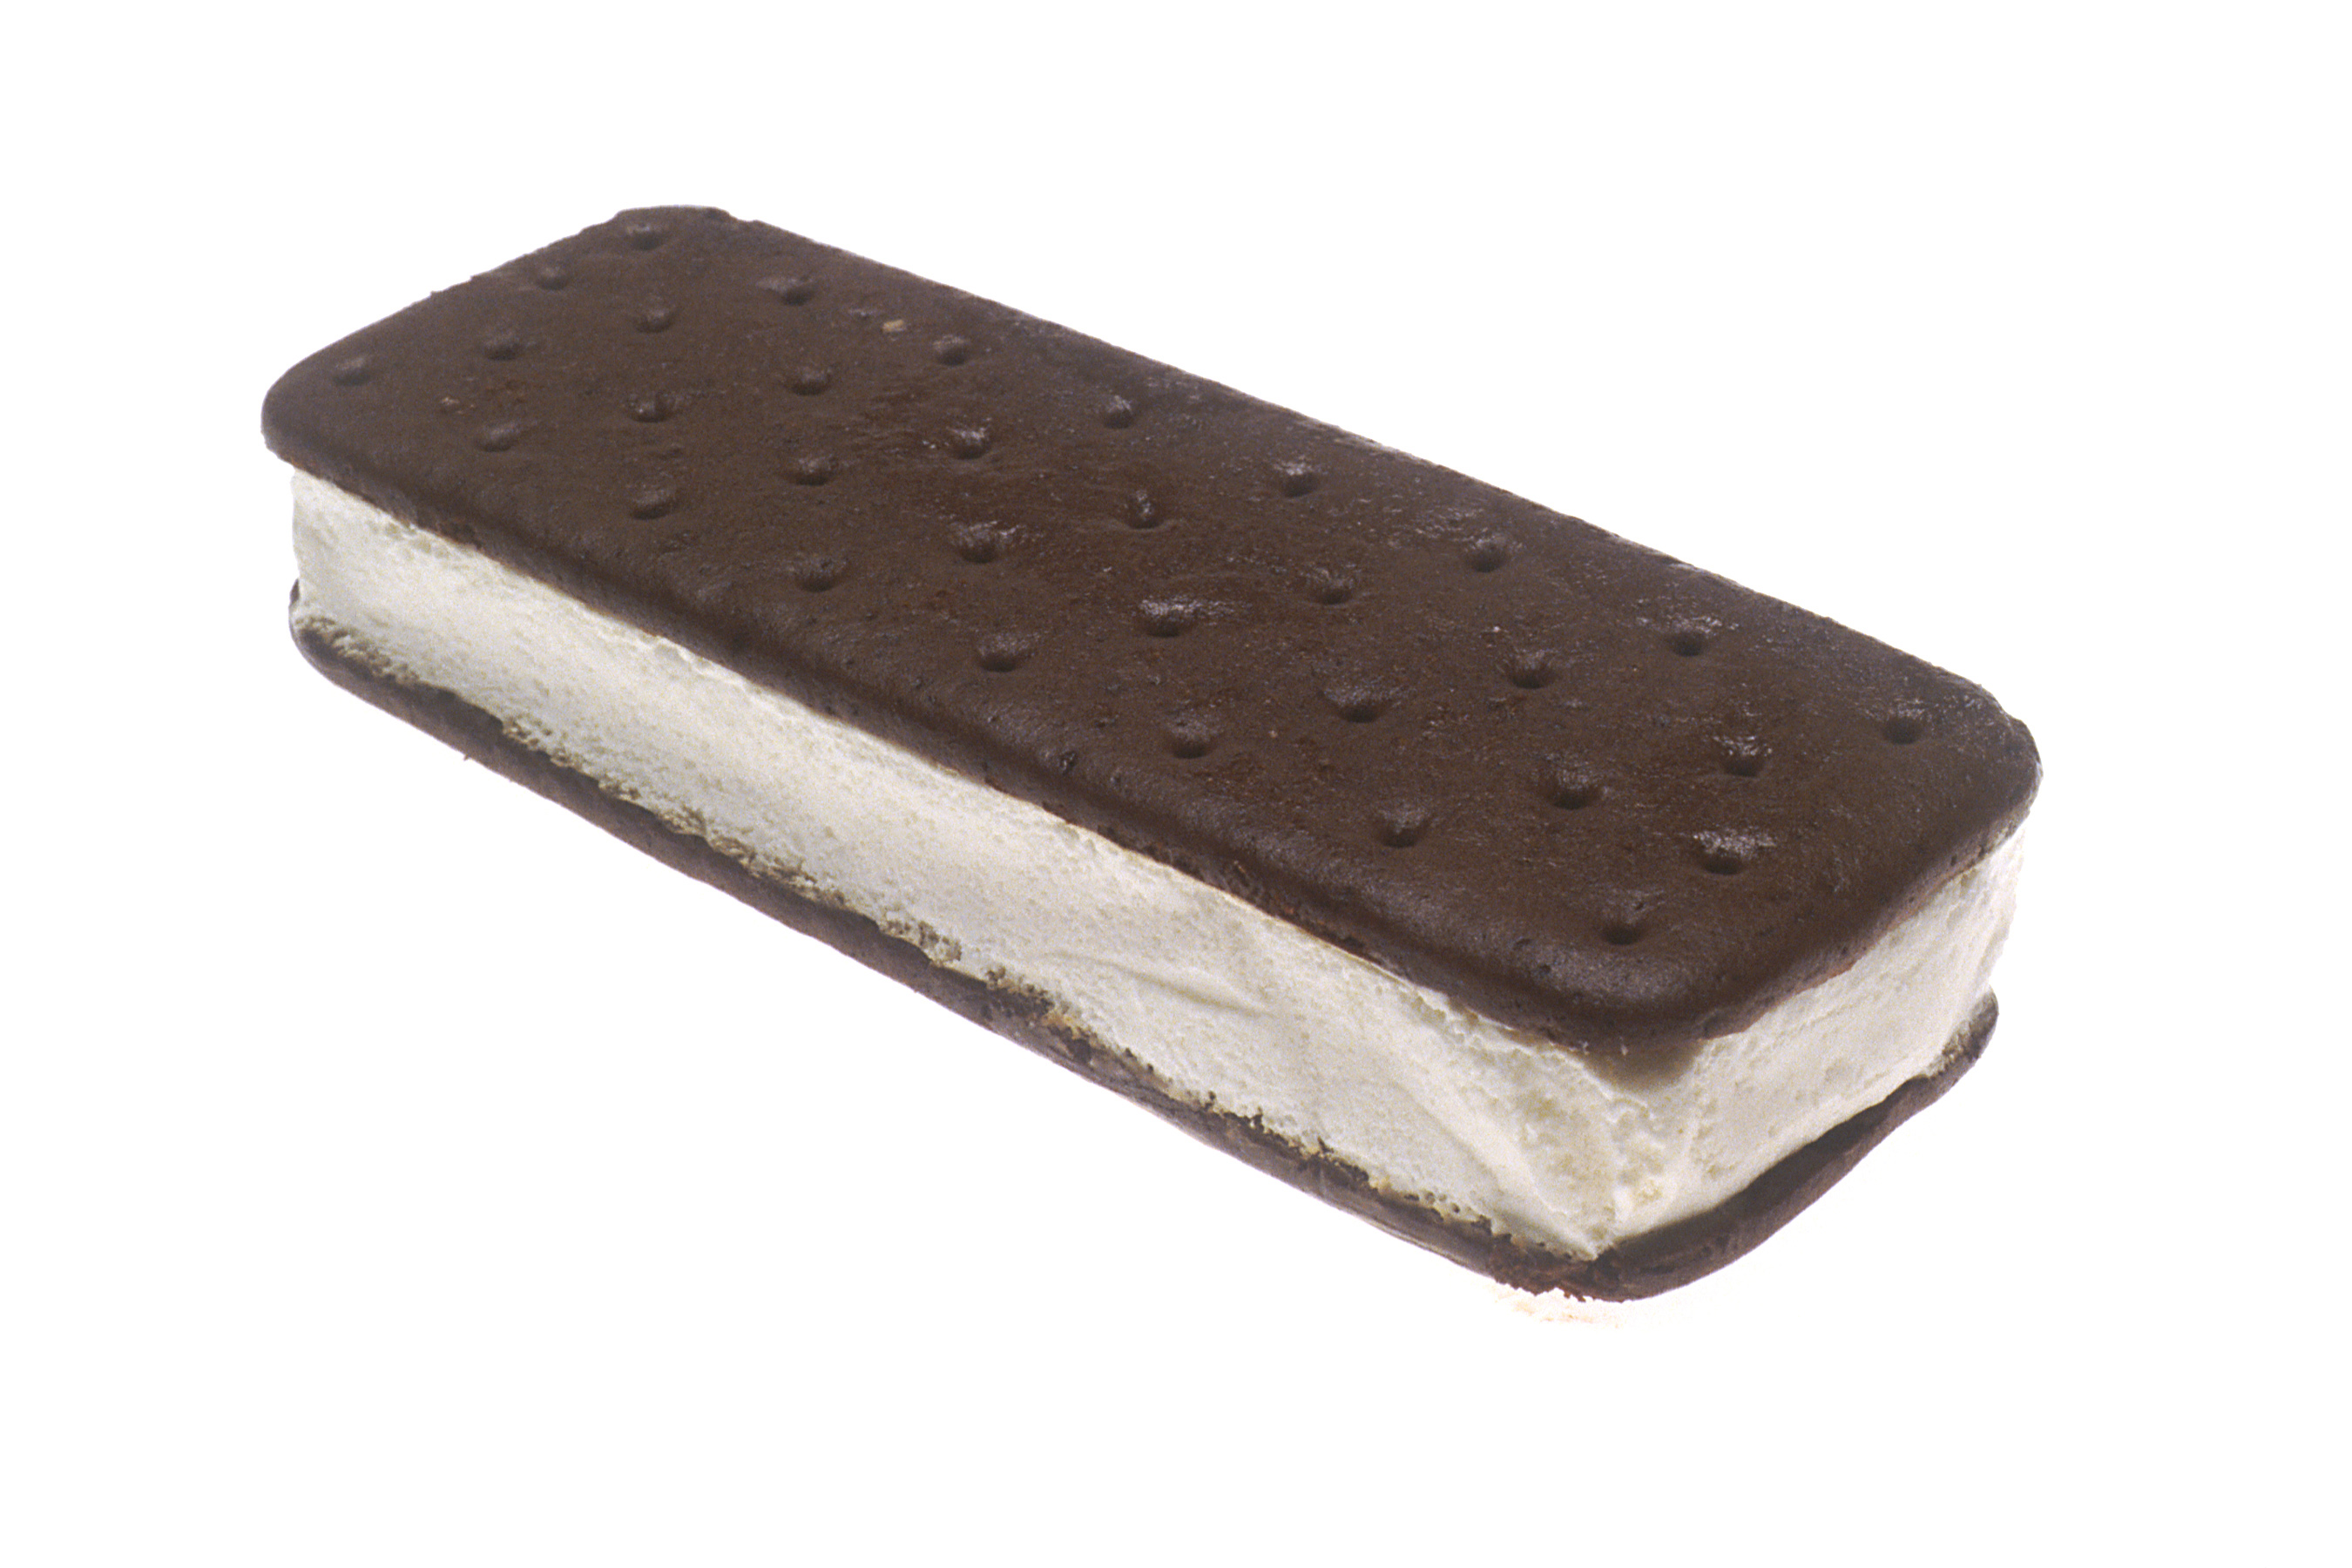 File:Ice cream sandwich (1).jpg - Wikimedia Commons